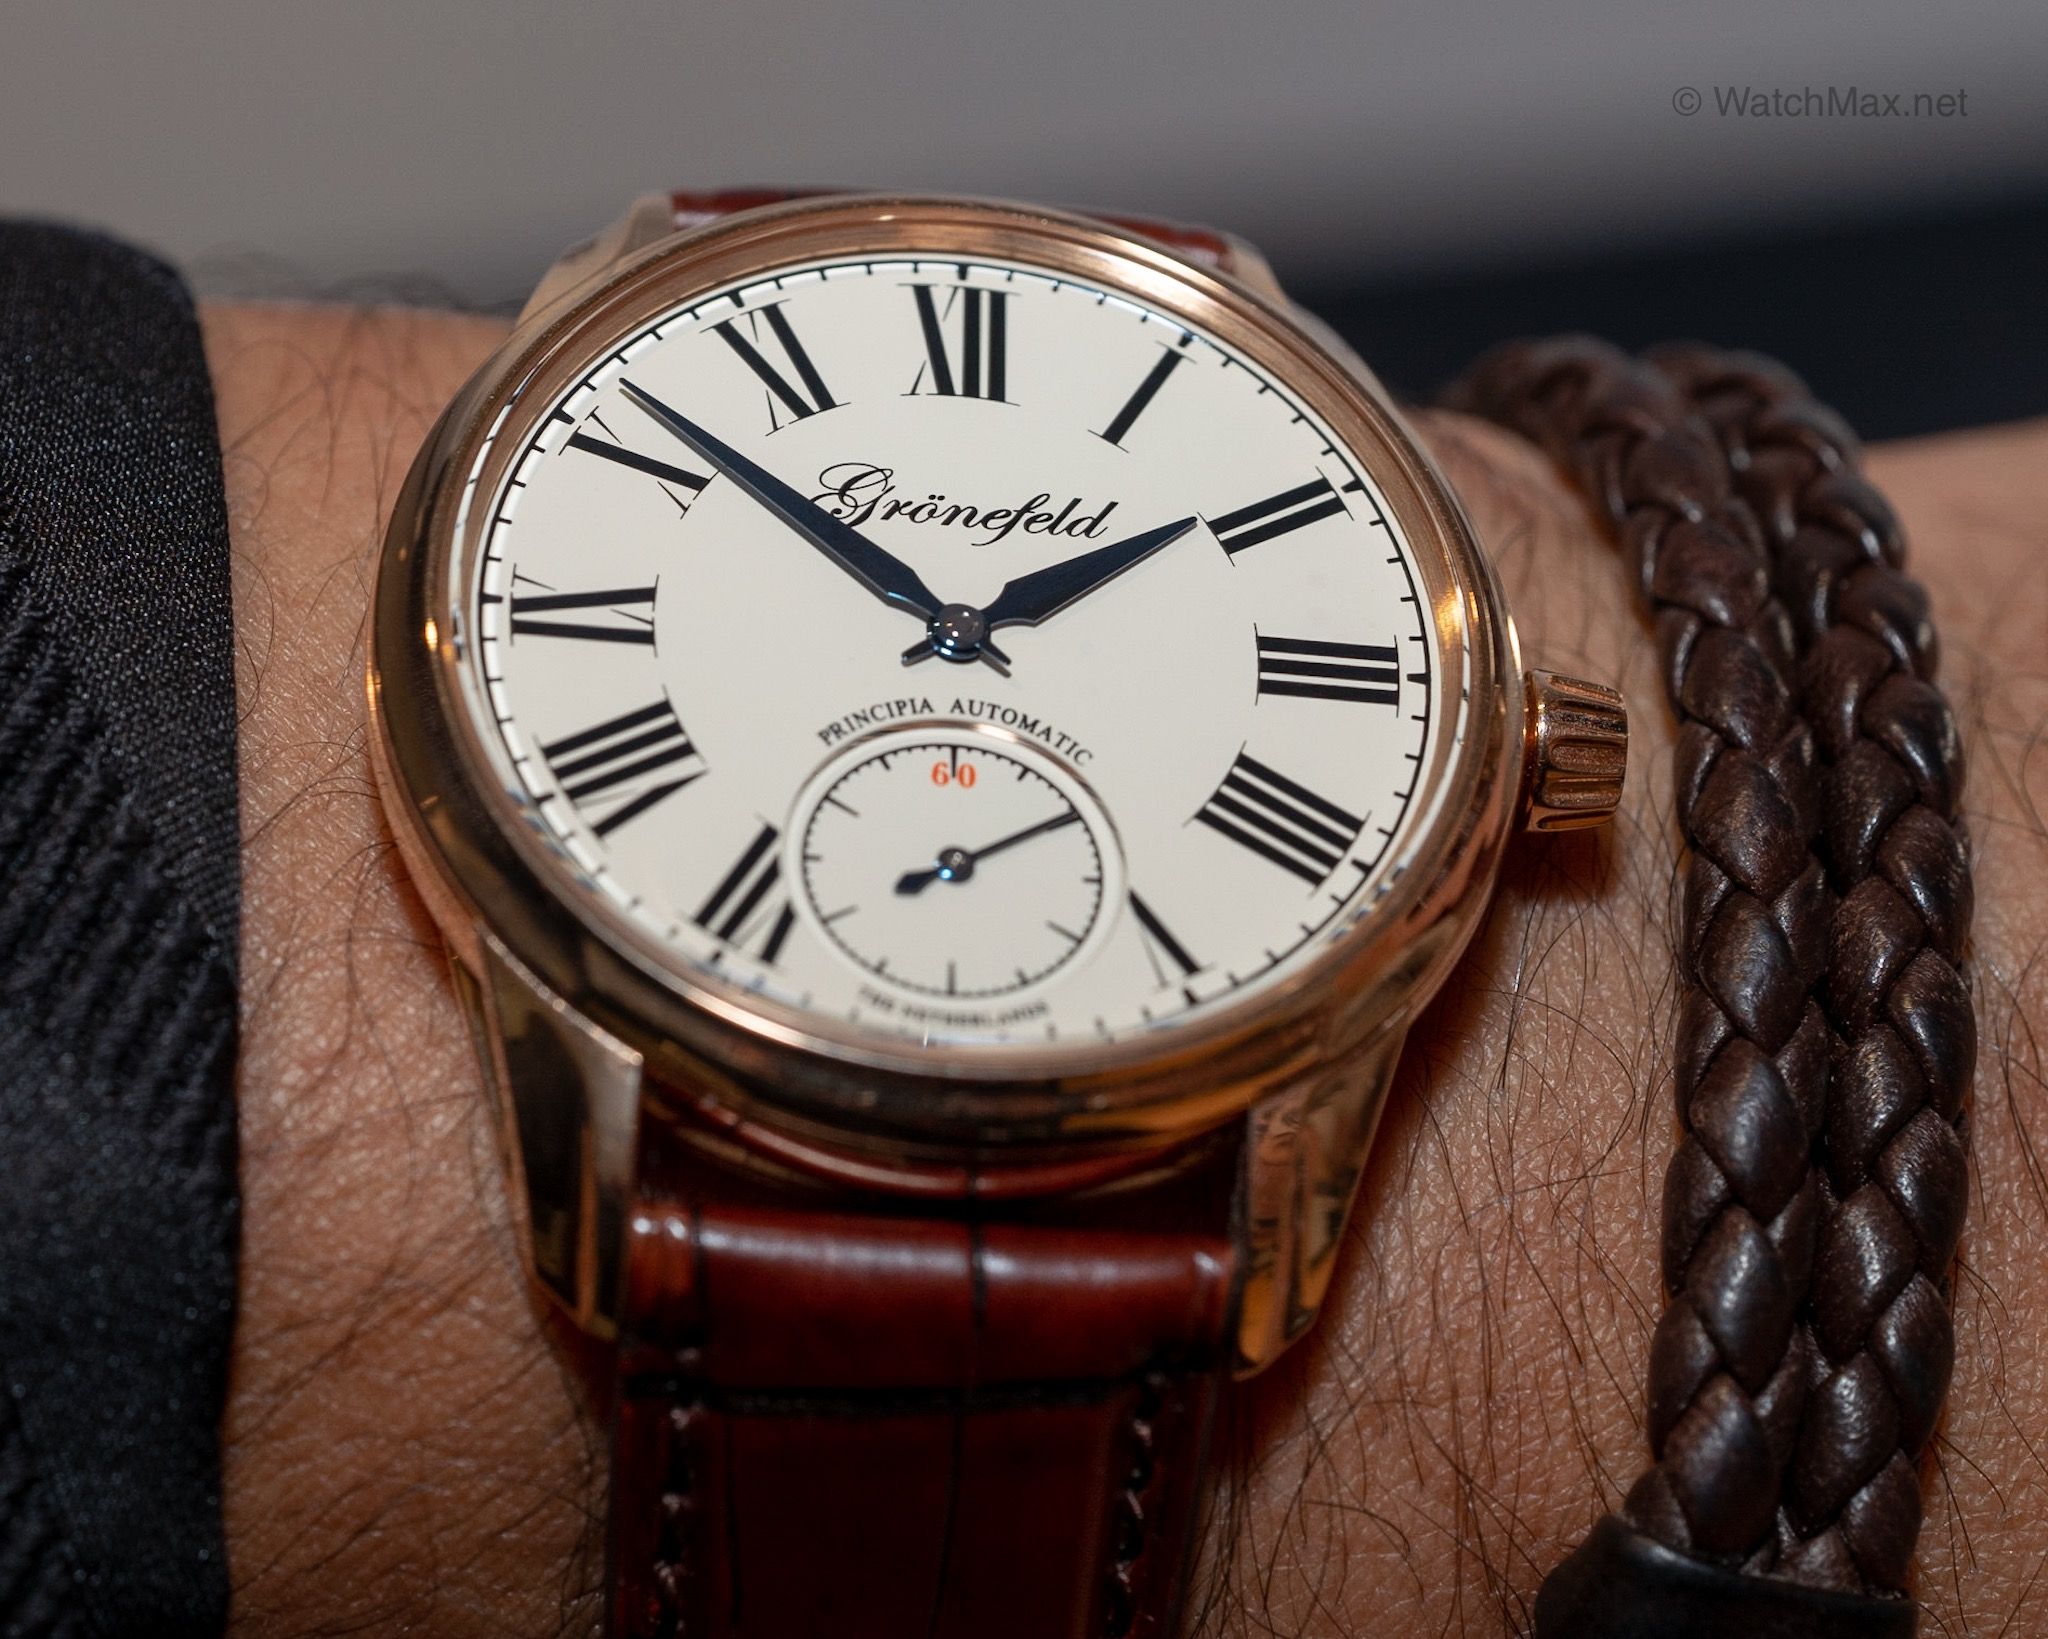 Grönefeld Principia automatic first look @ SIHH 2019 - A highlight at each watch fair is to meet with the horological brothers. This time Bart and Tim Grönefeld show me their first automatic watch. Read more